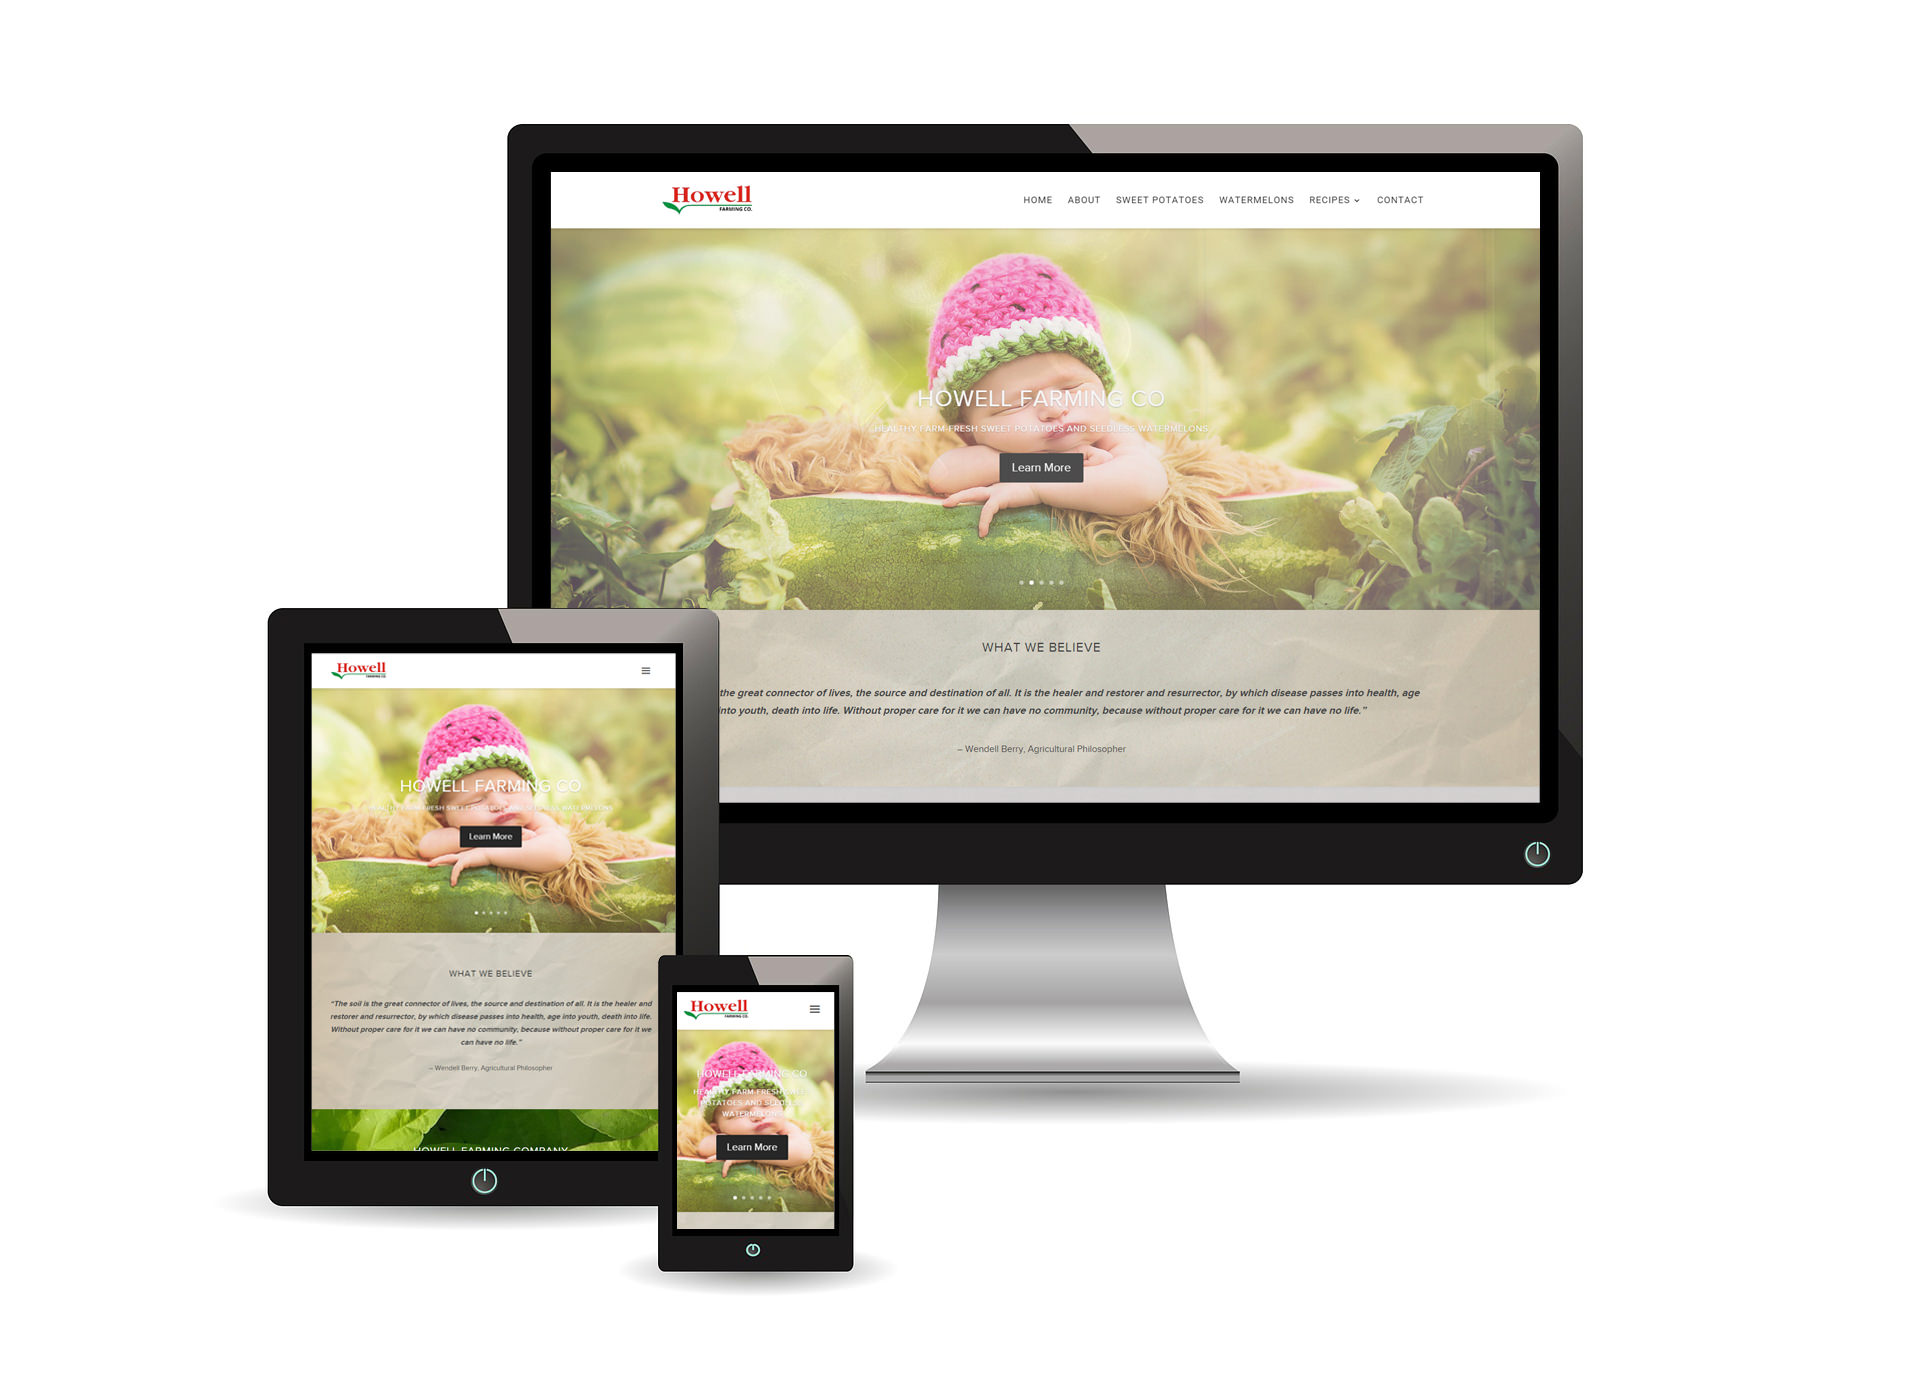 Responsive Web Design by ITSS